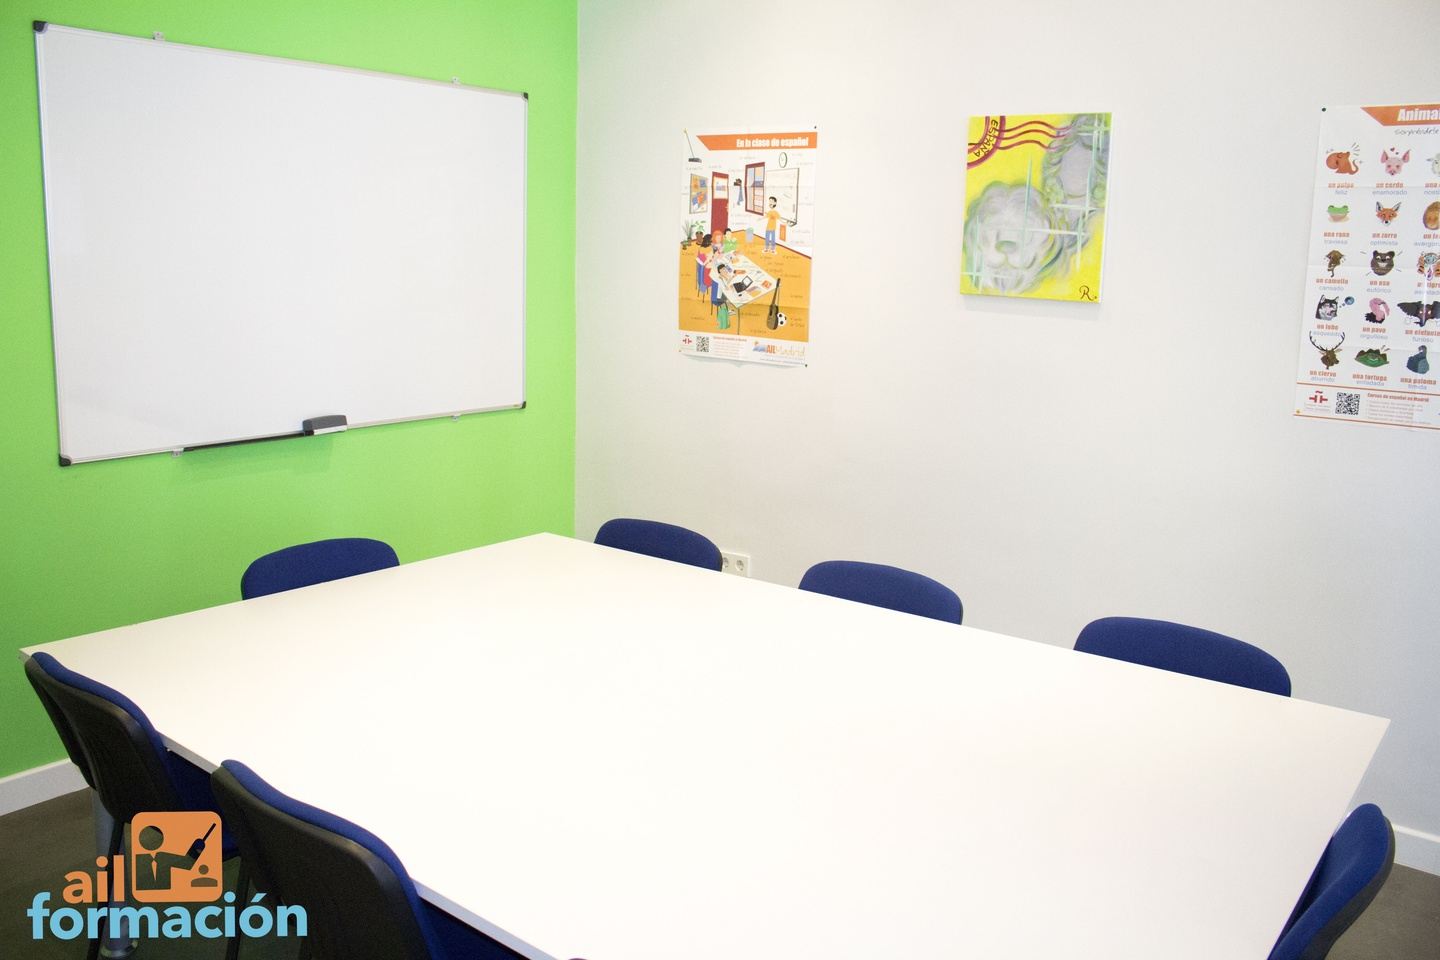 Madrid training rooms Meeting room AIL Formación - Cibeles image 1